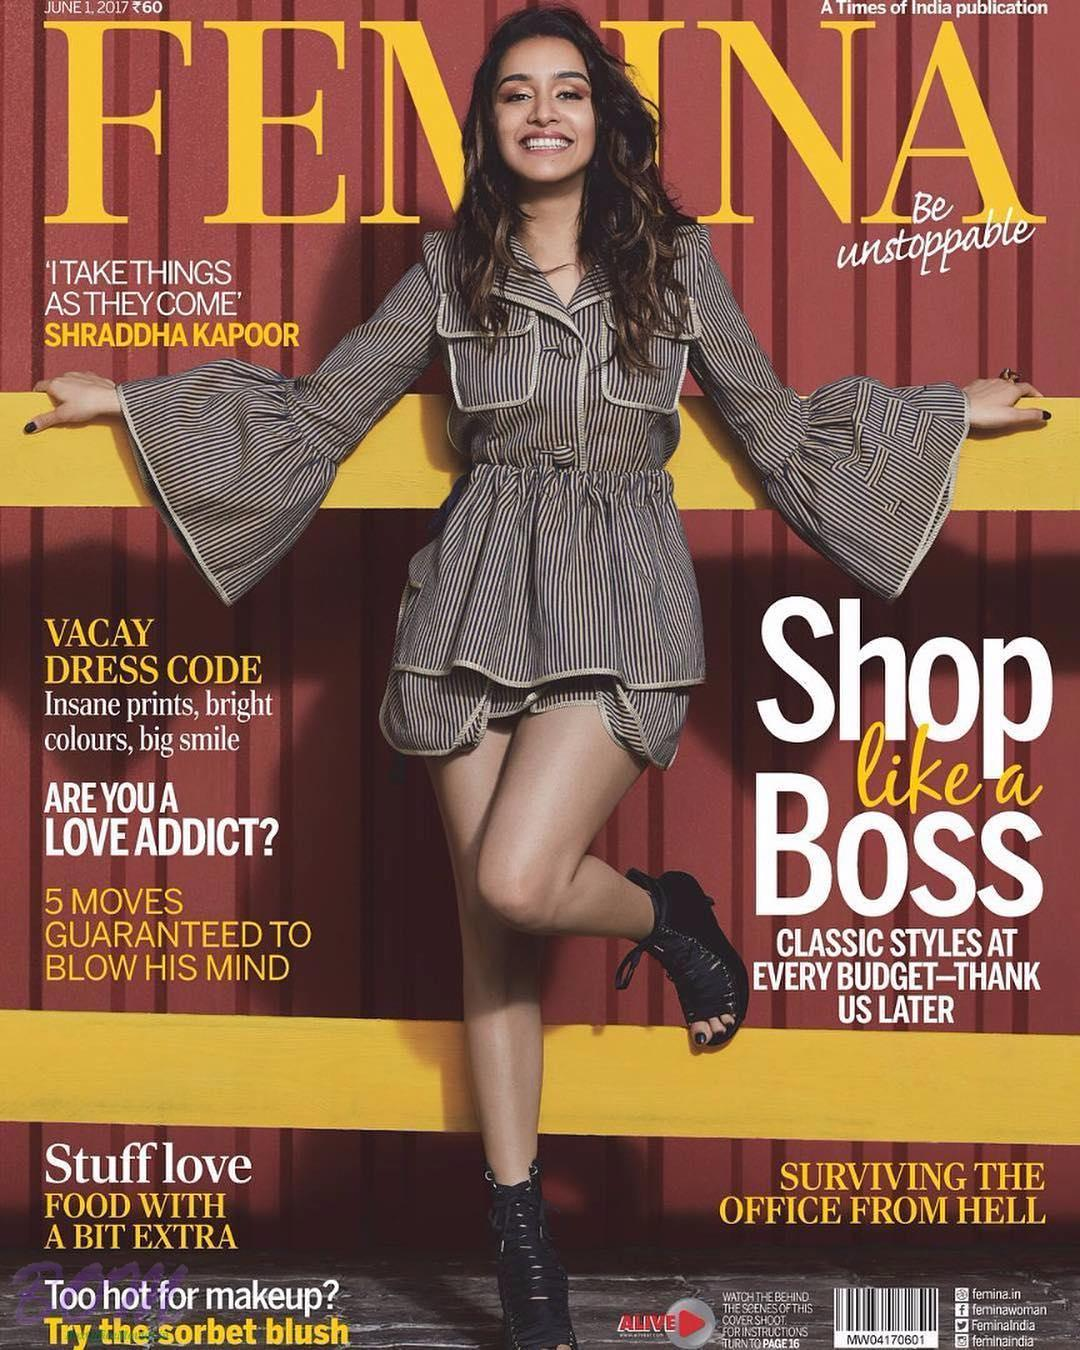 Shraddha Kapoor cover girl for FEMINA Magazine June 2017 issue